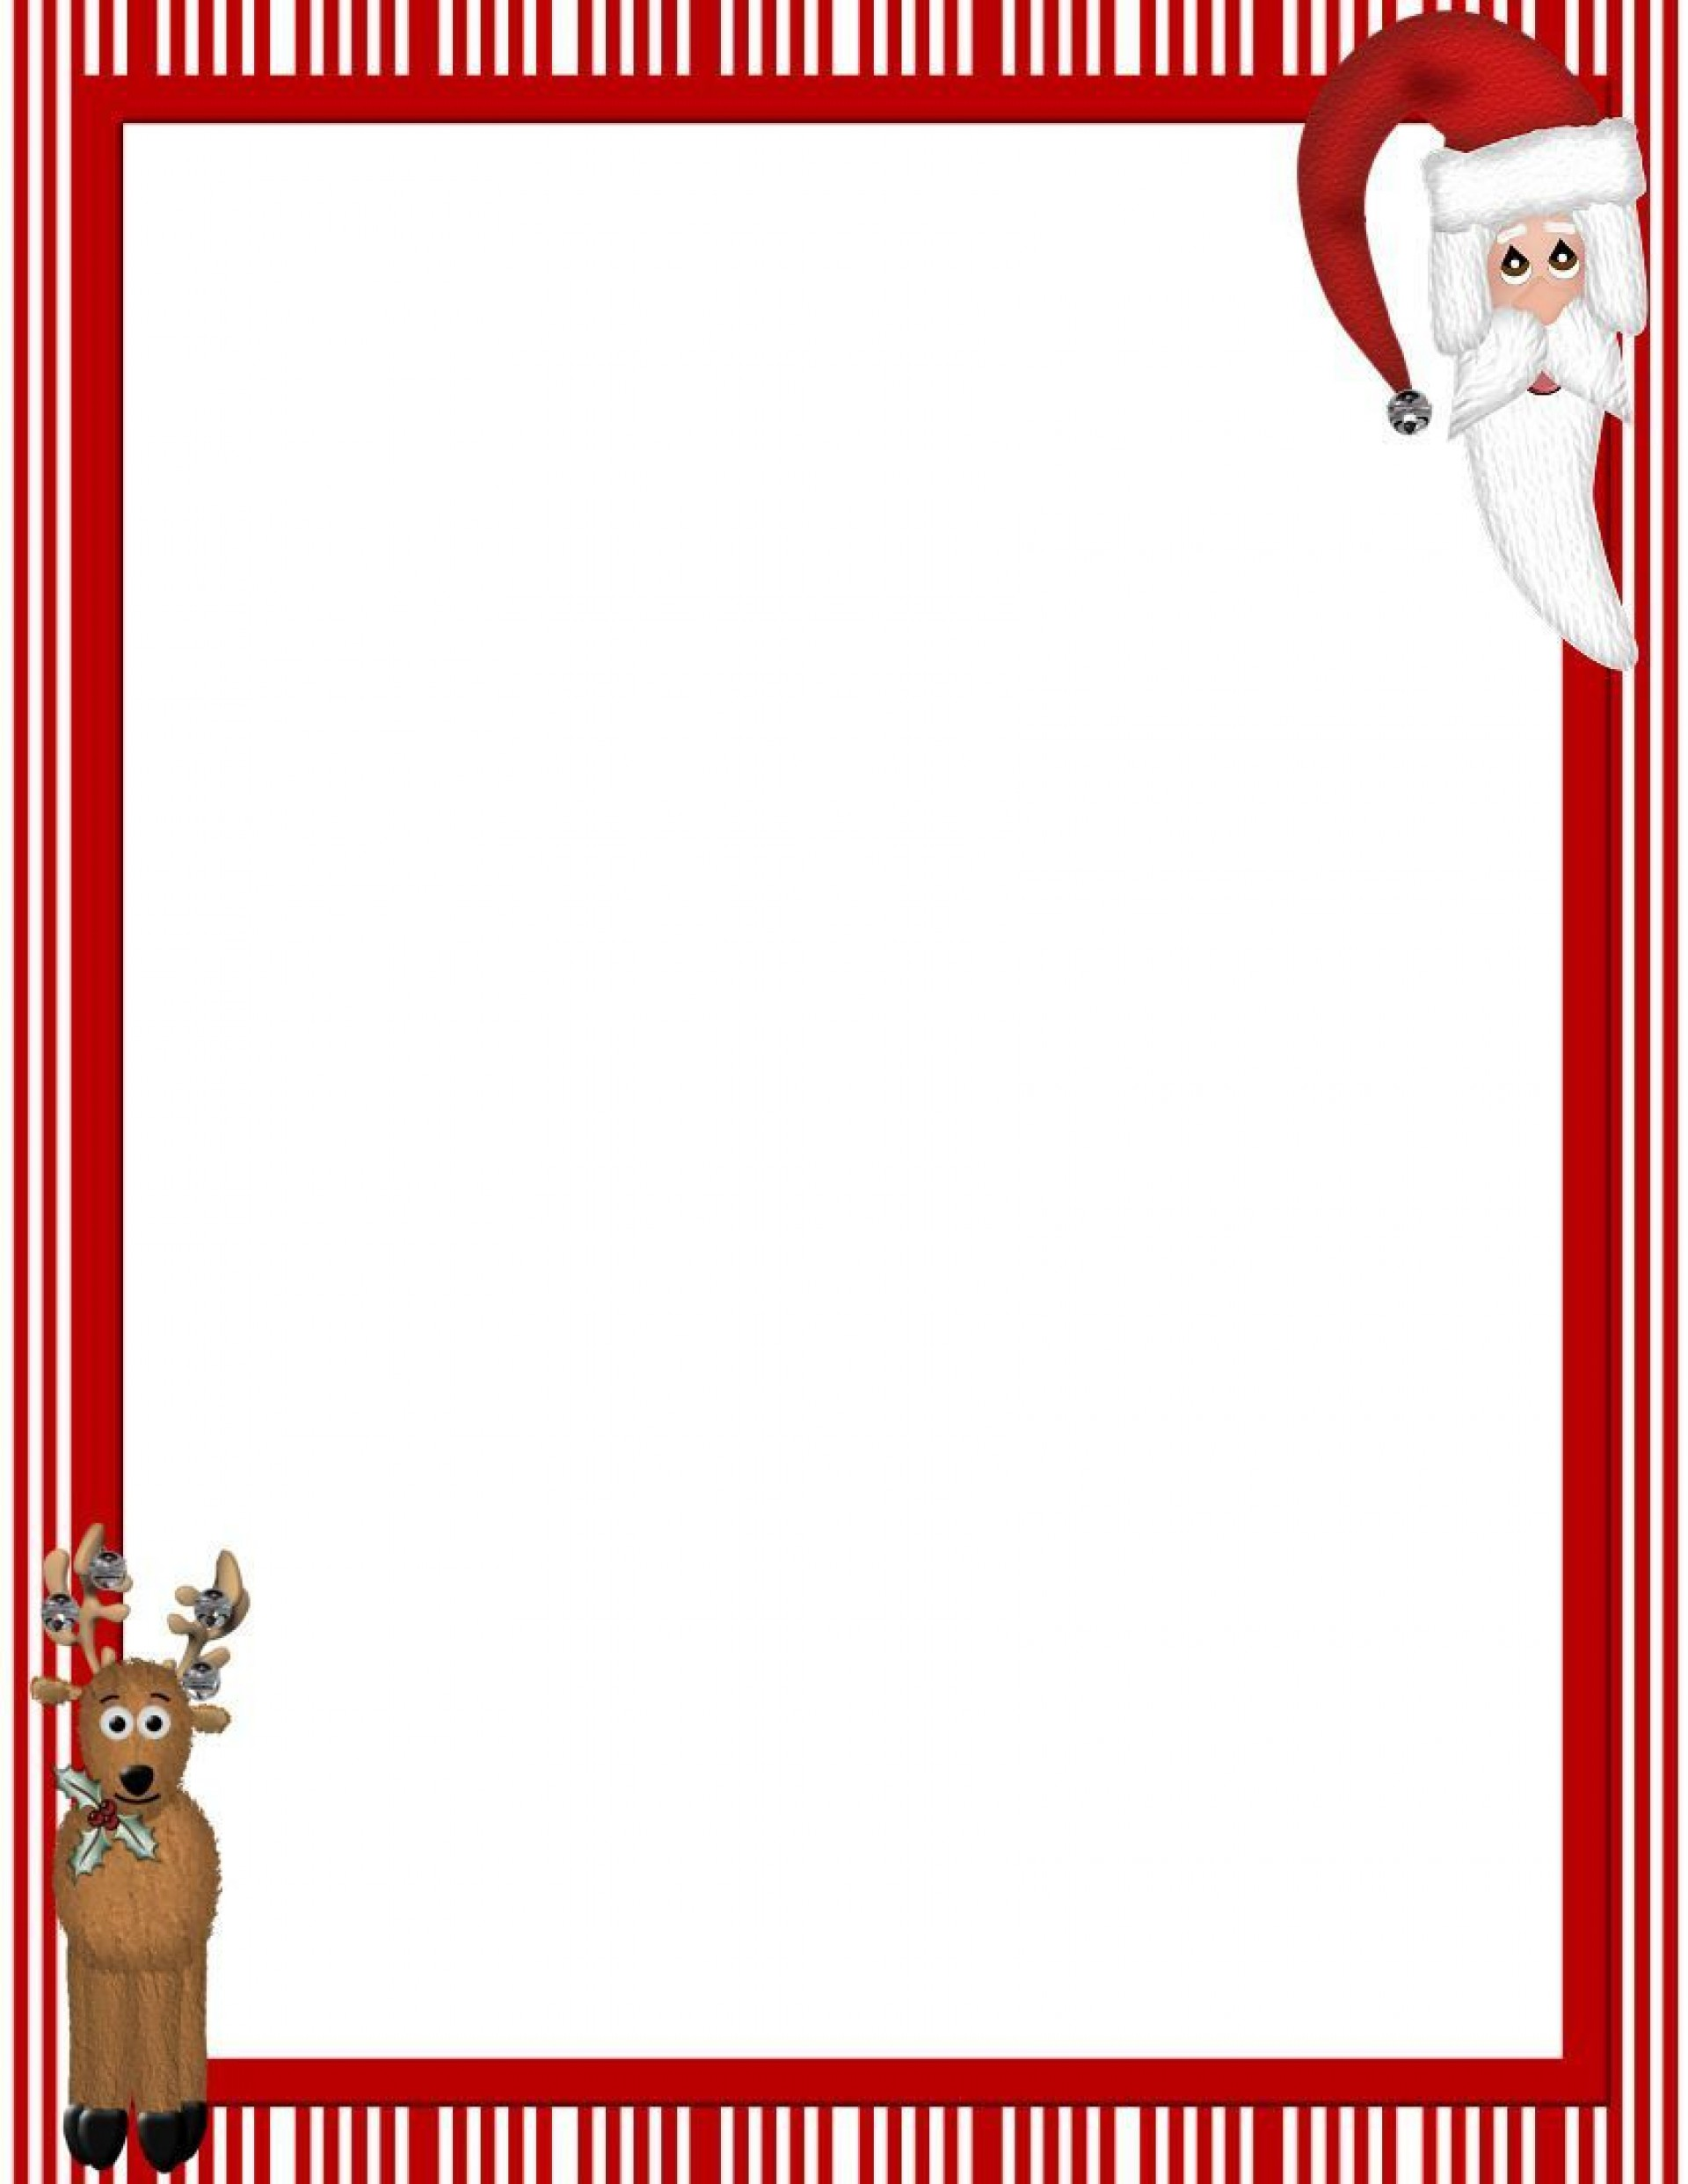 007 Excellent Christma Stationery Template Word Free High Resolution  Religiou For Downloadable1920